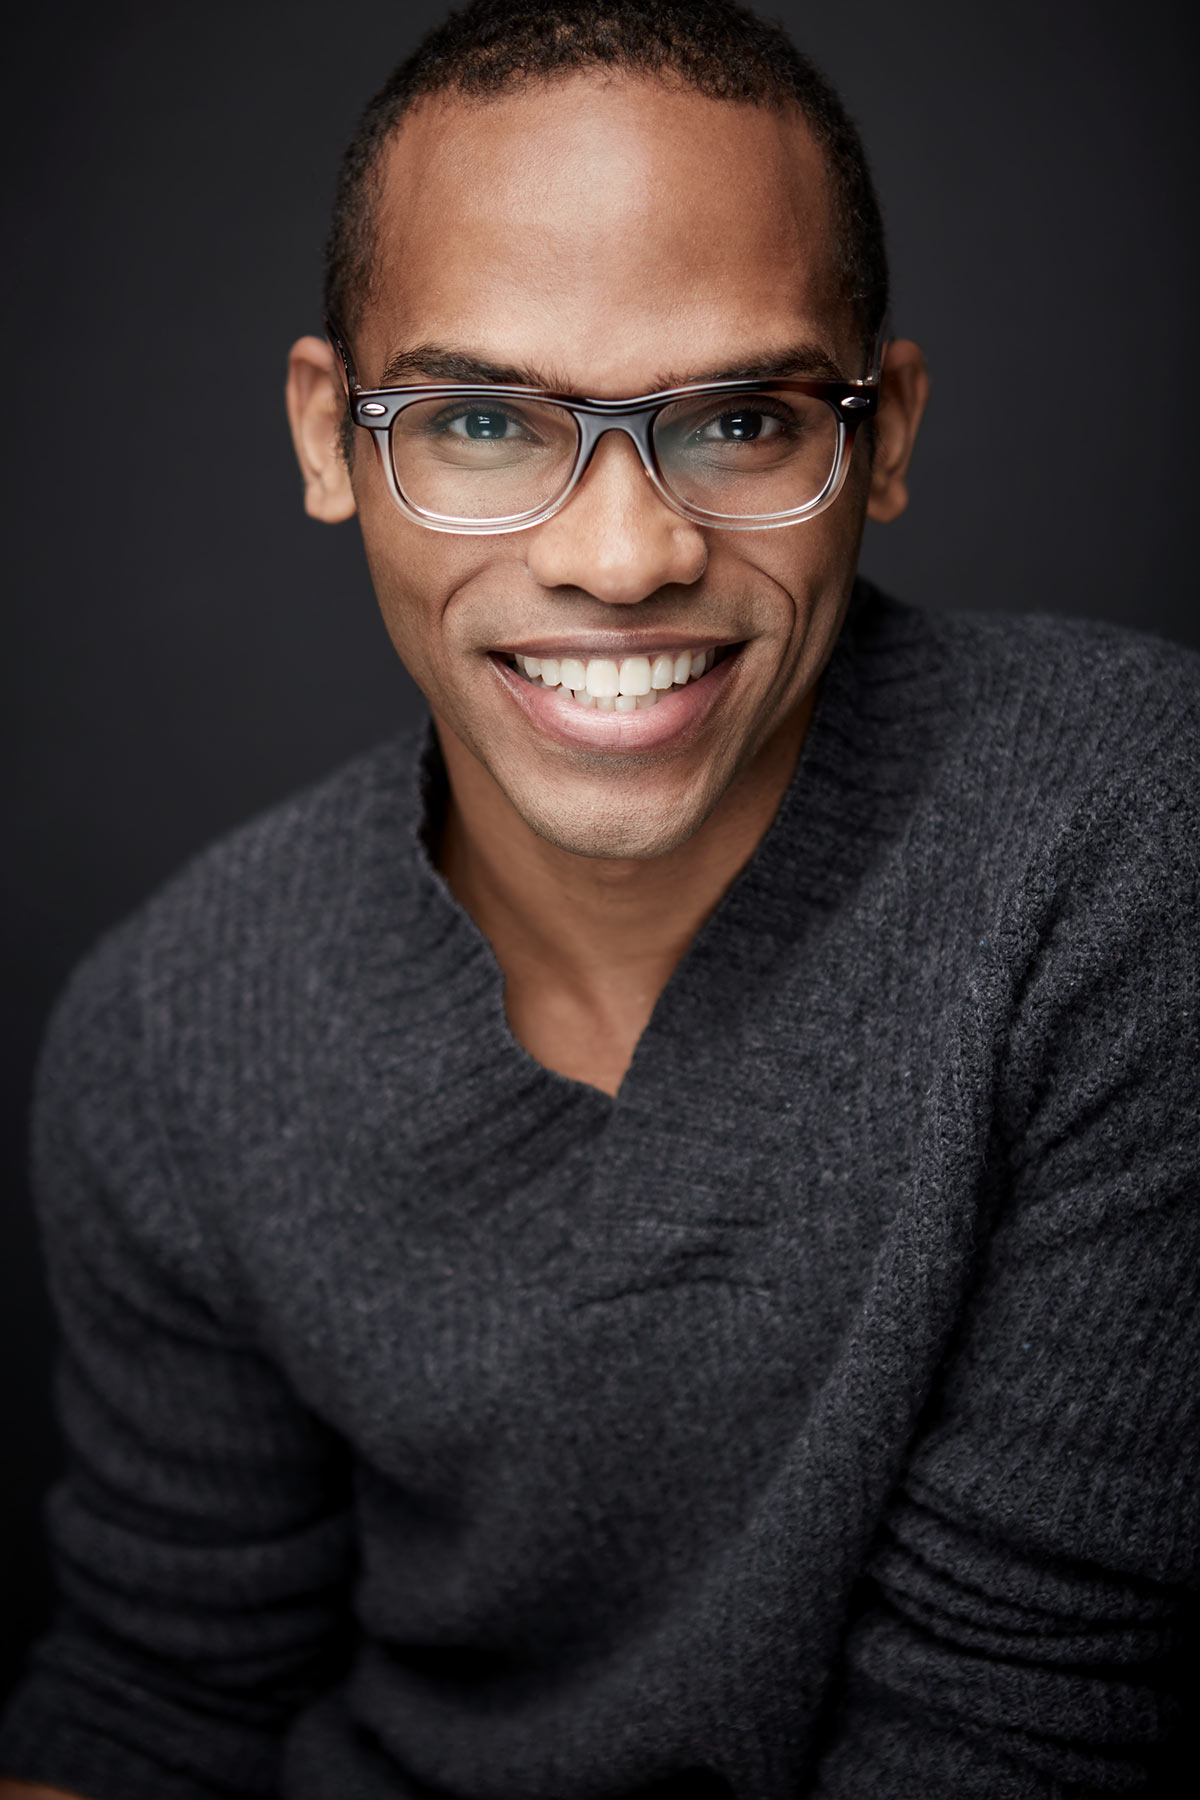 Felix_Chicago_Headshots_Photographer_Actor_Realtor_Business_Portrait_Tiny_Space_Studio